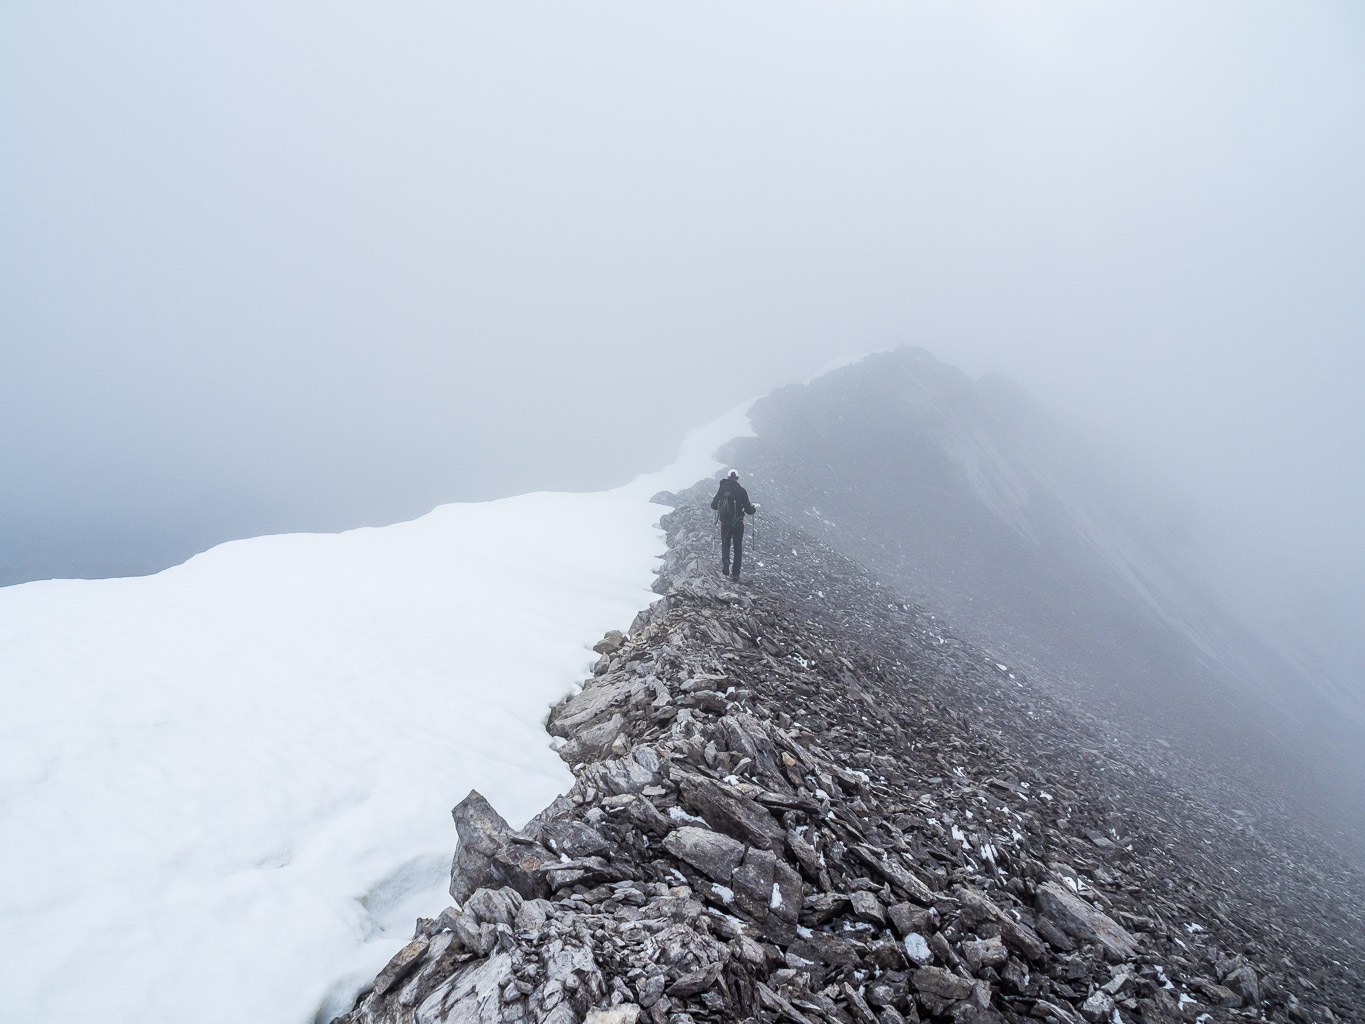 On the summit ridge.